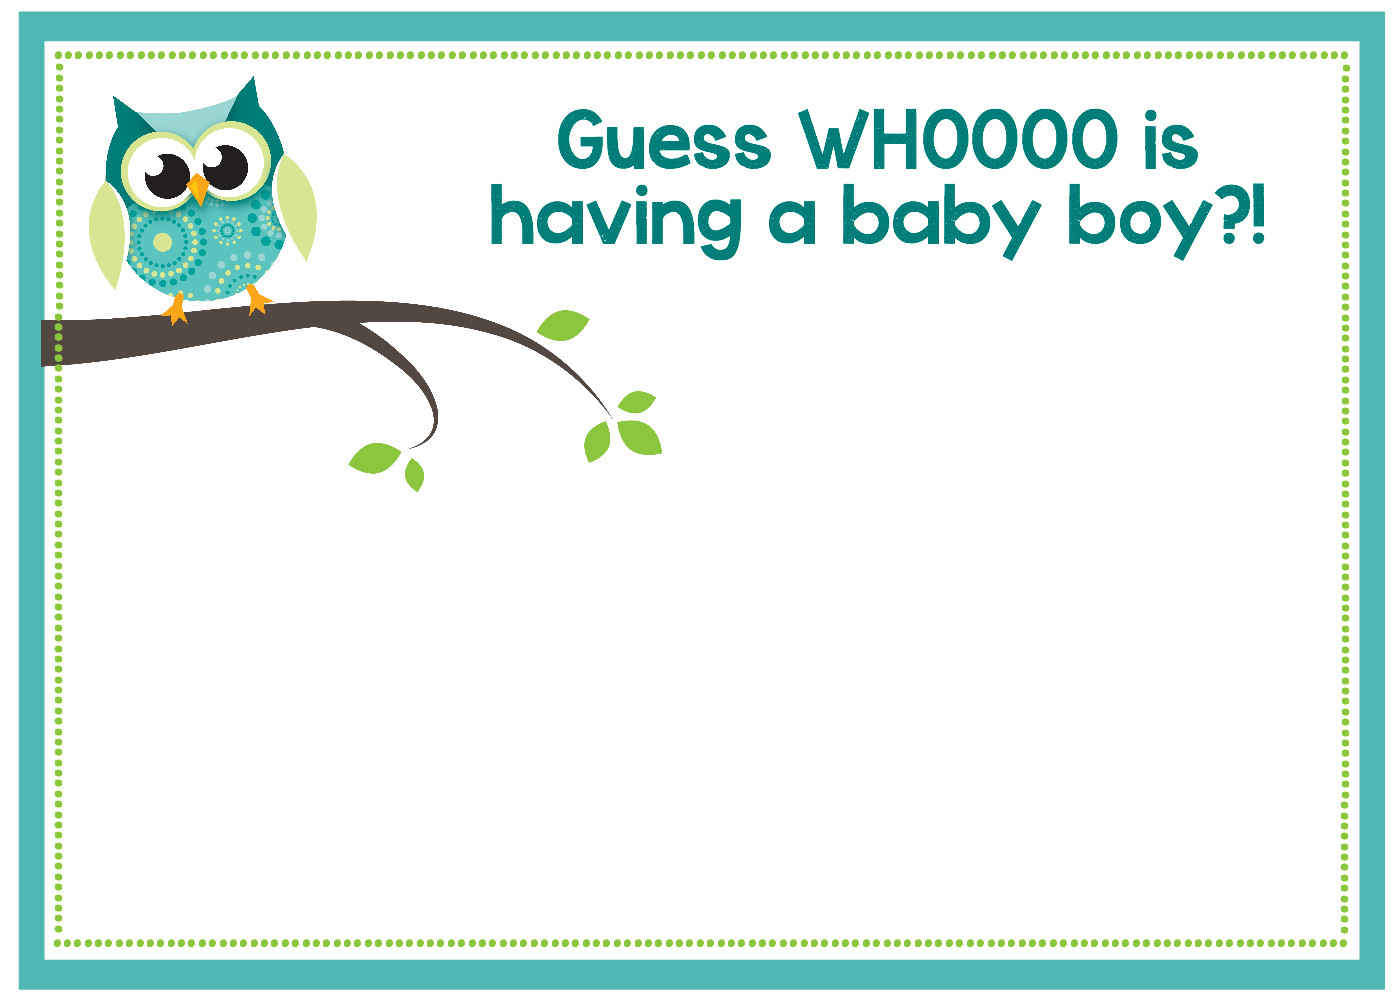 Baby Shower Invitation Template Free Printable Owl Baby Shower Invitations & Other